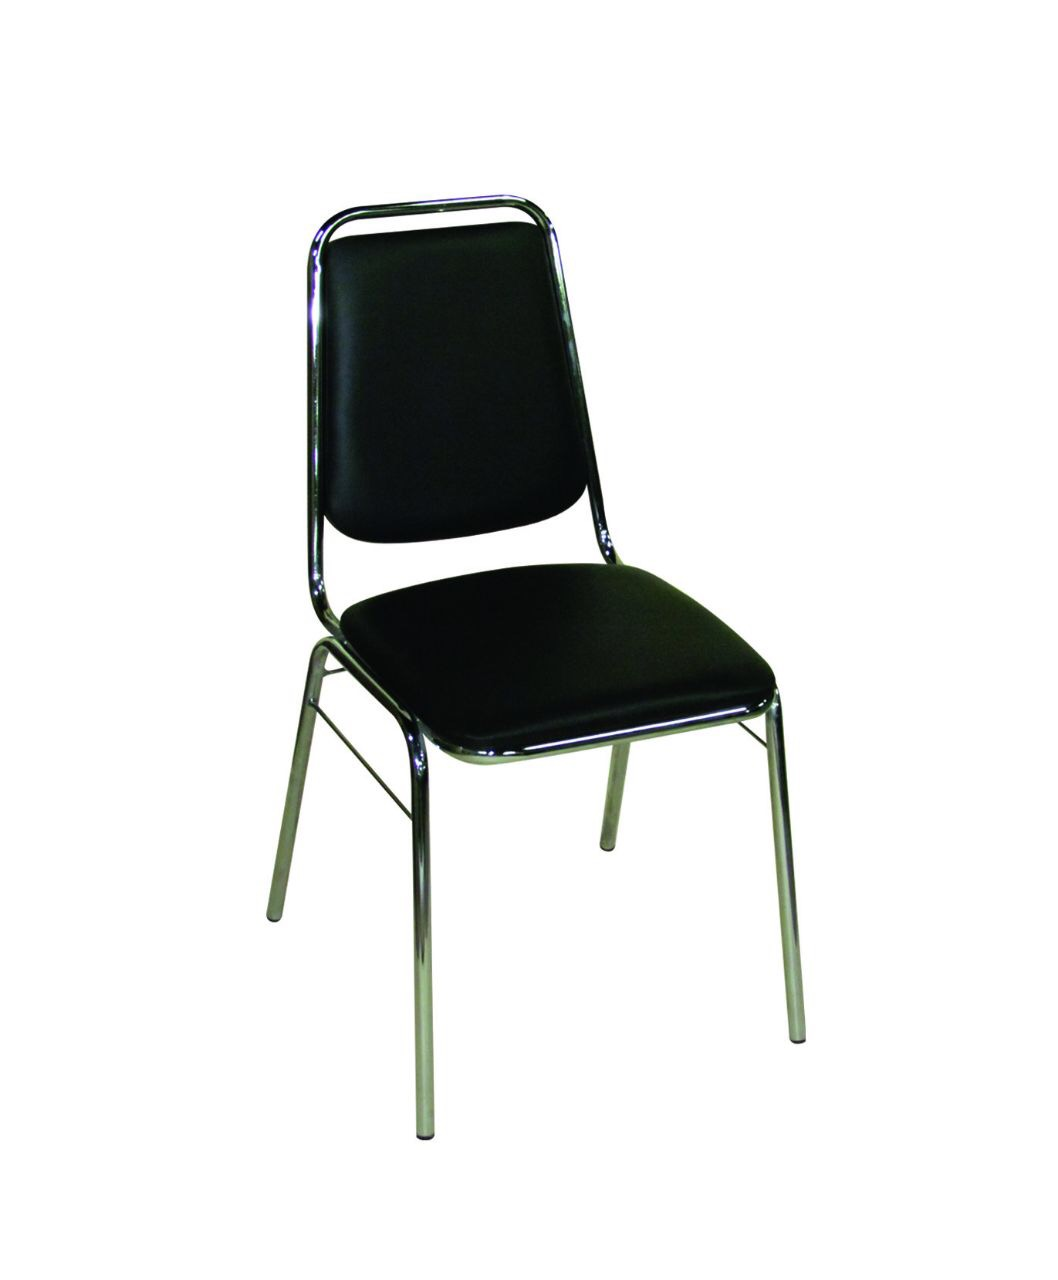 C23 Comfort Black Visitors Chairs